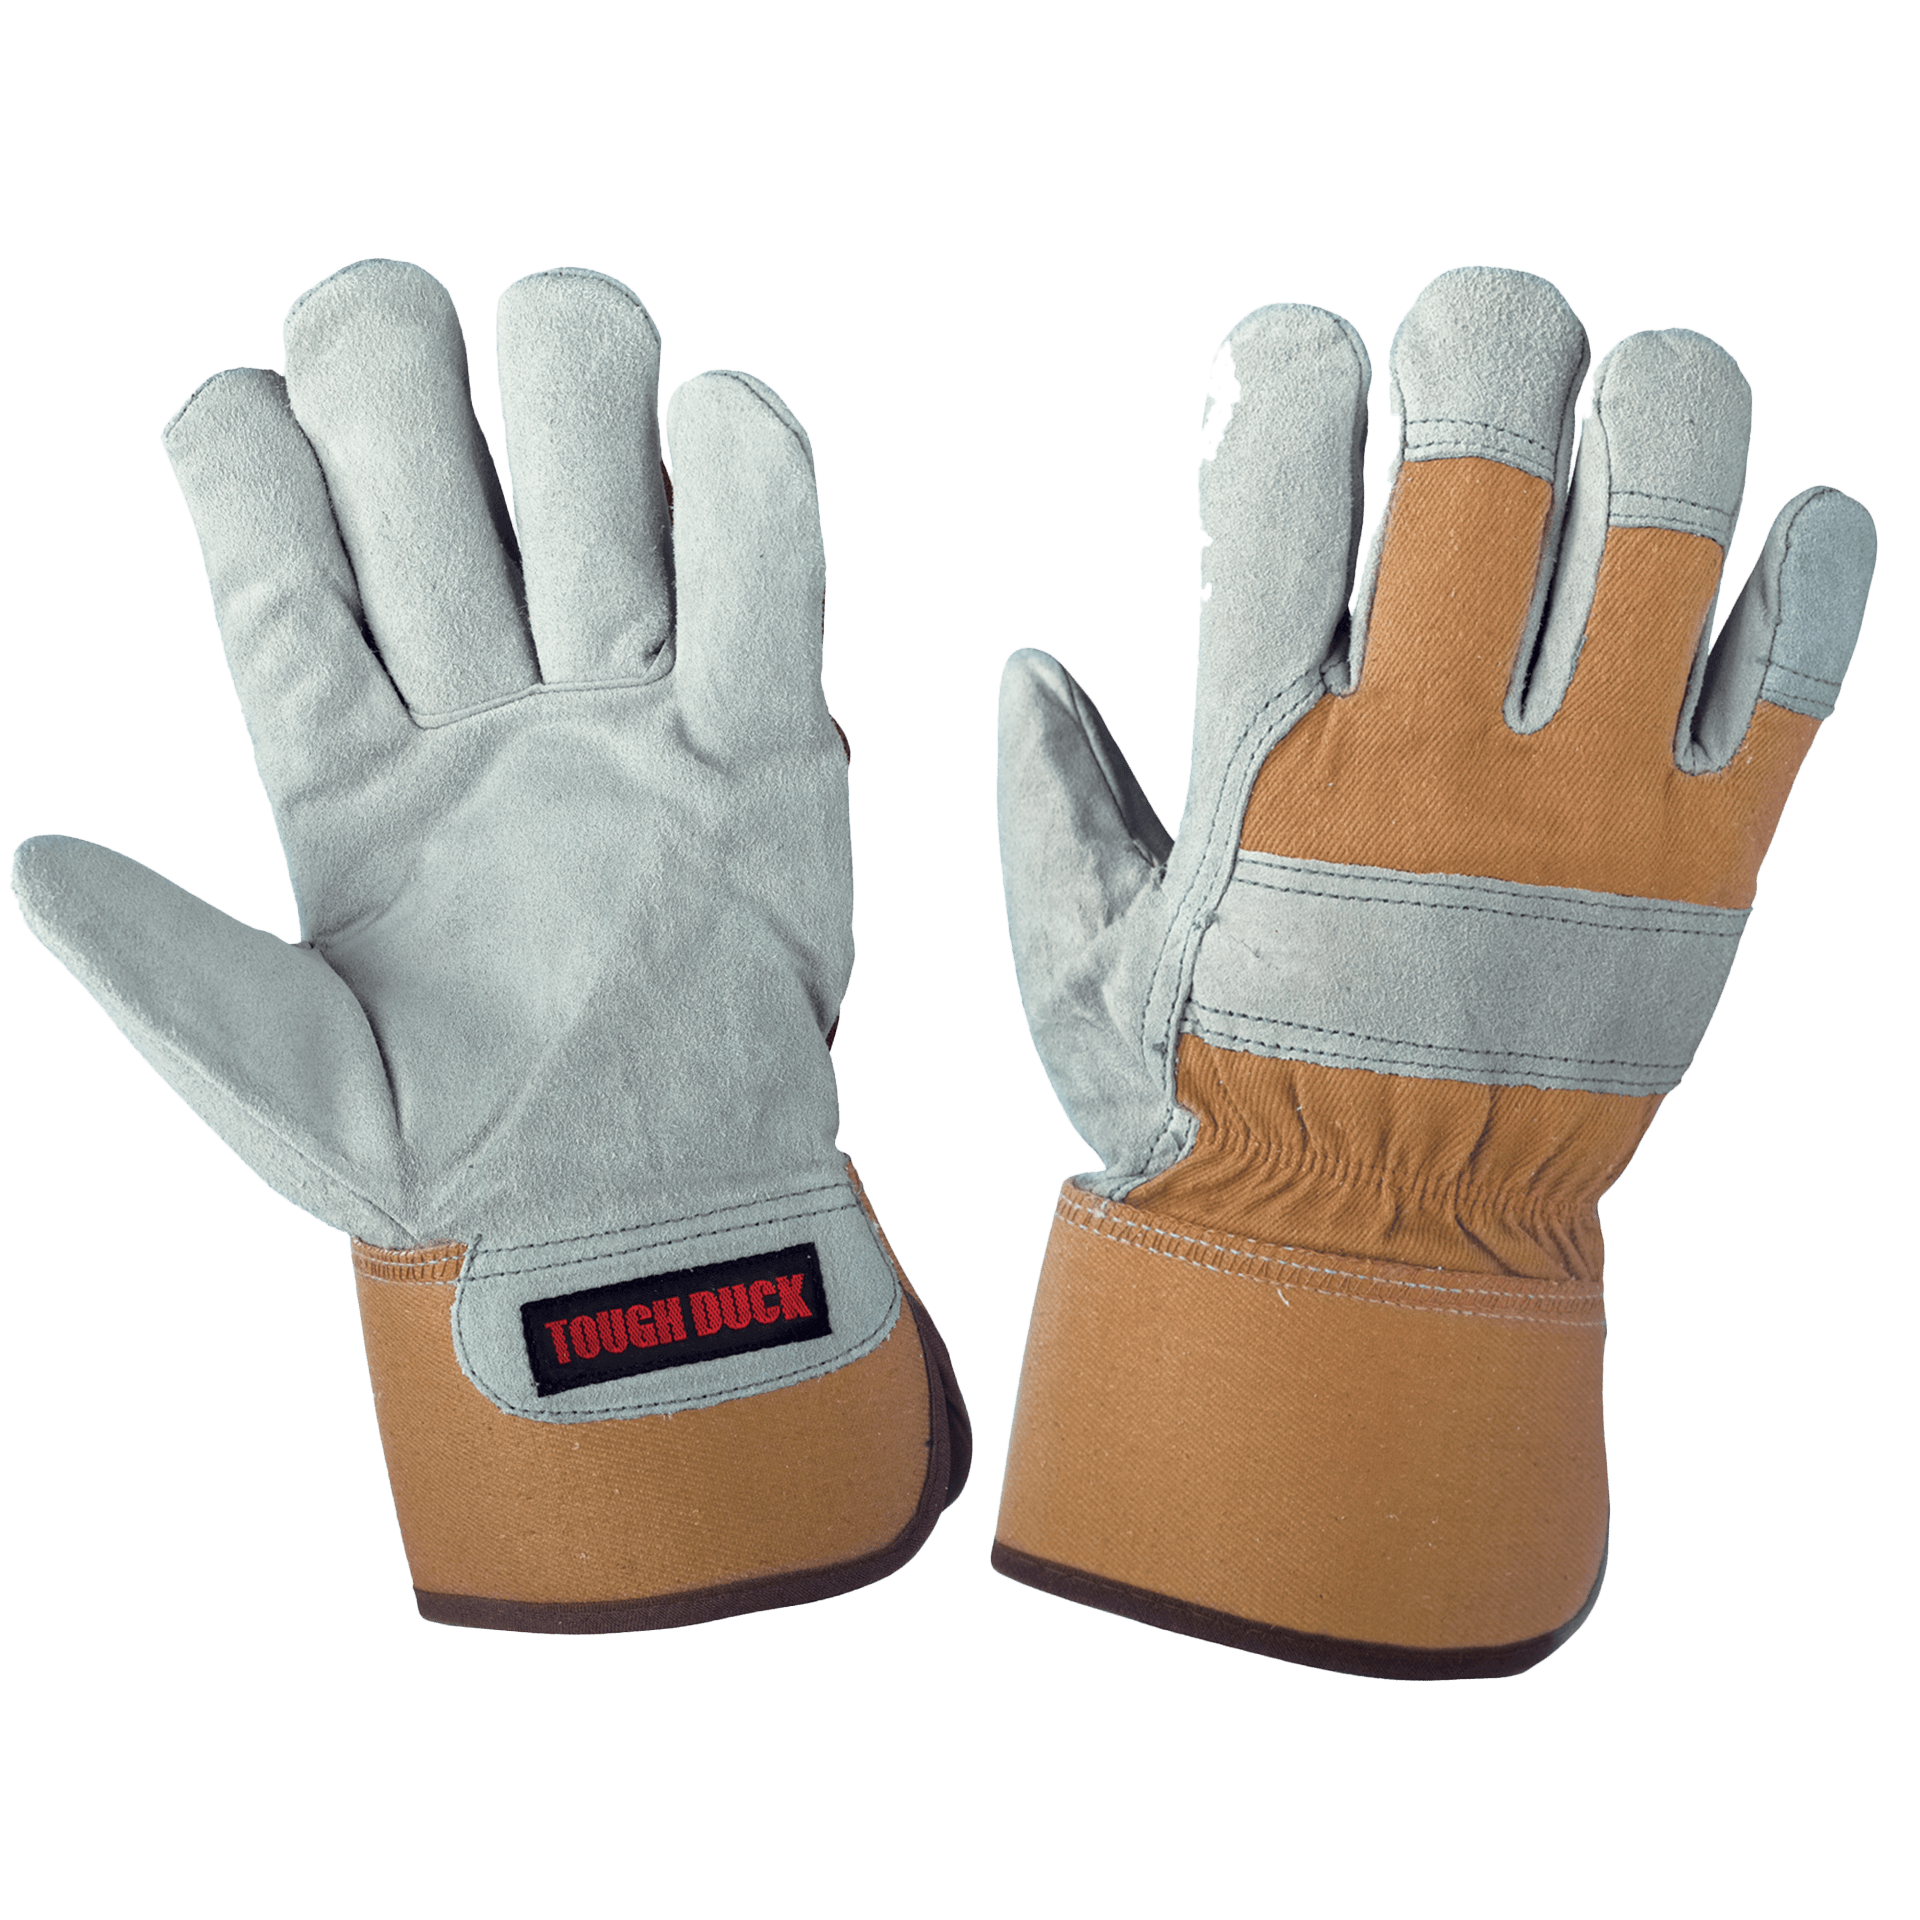 Tough Tuck Cow Split Leather Fitters Glove Gi5506